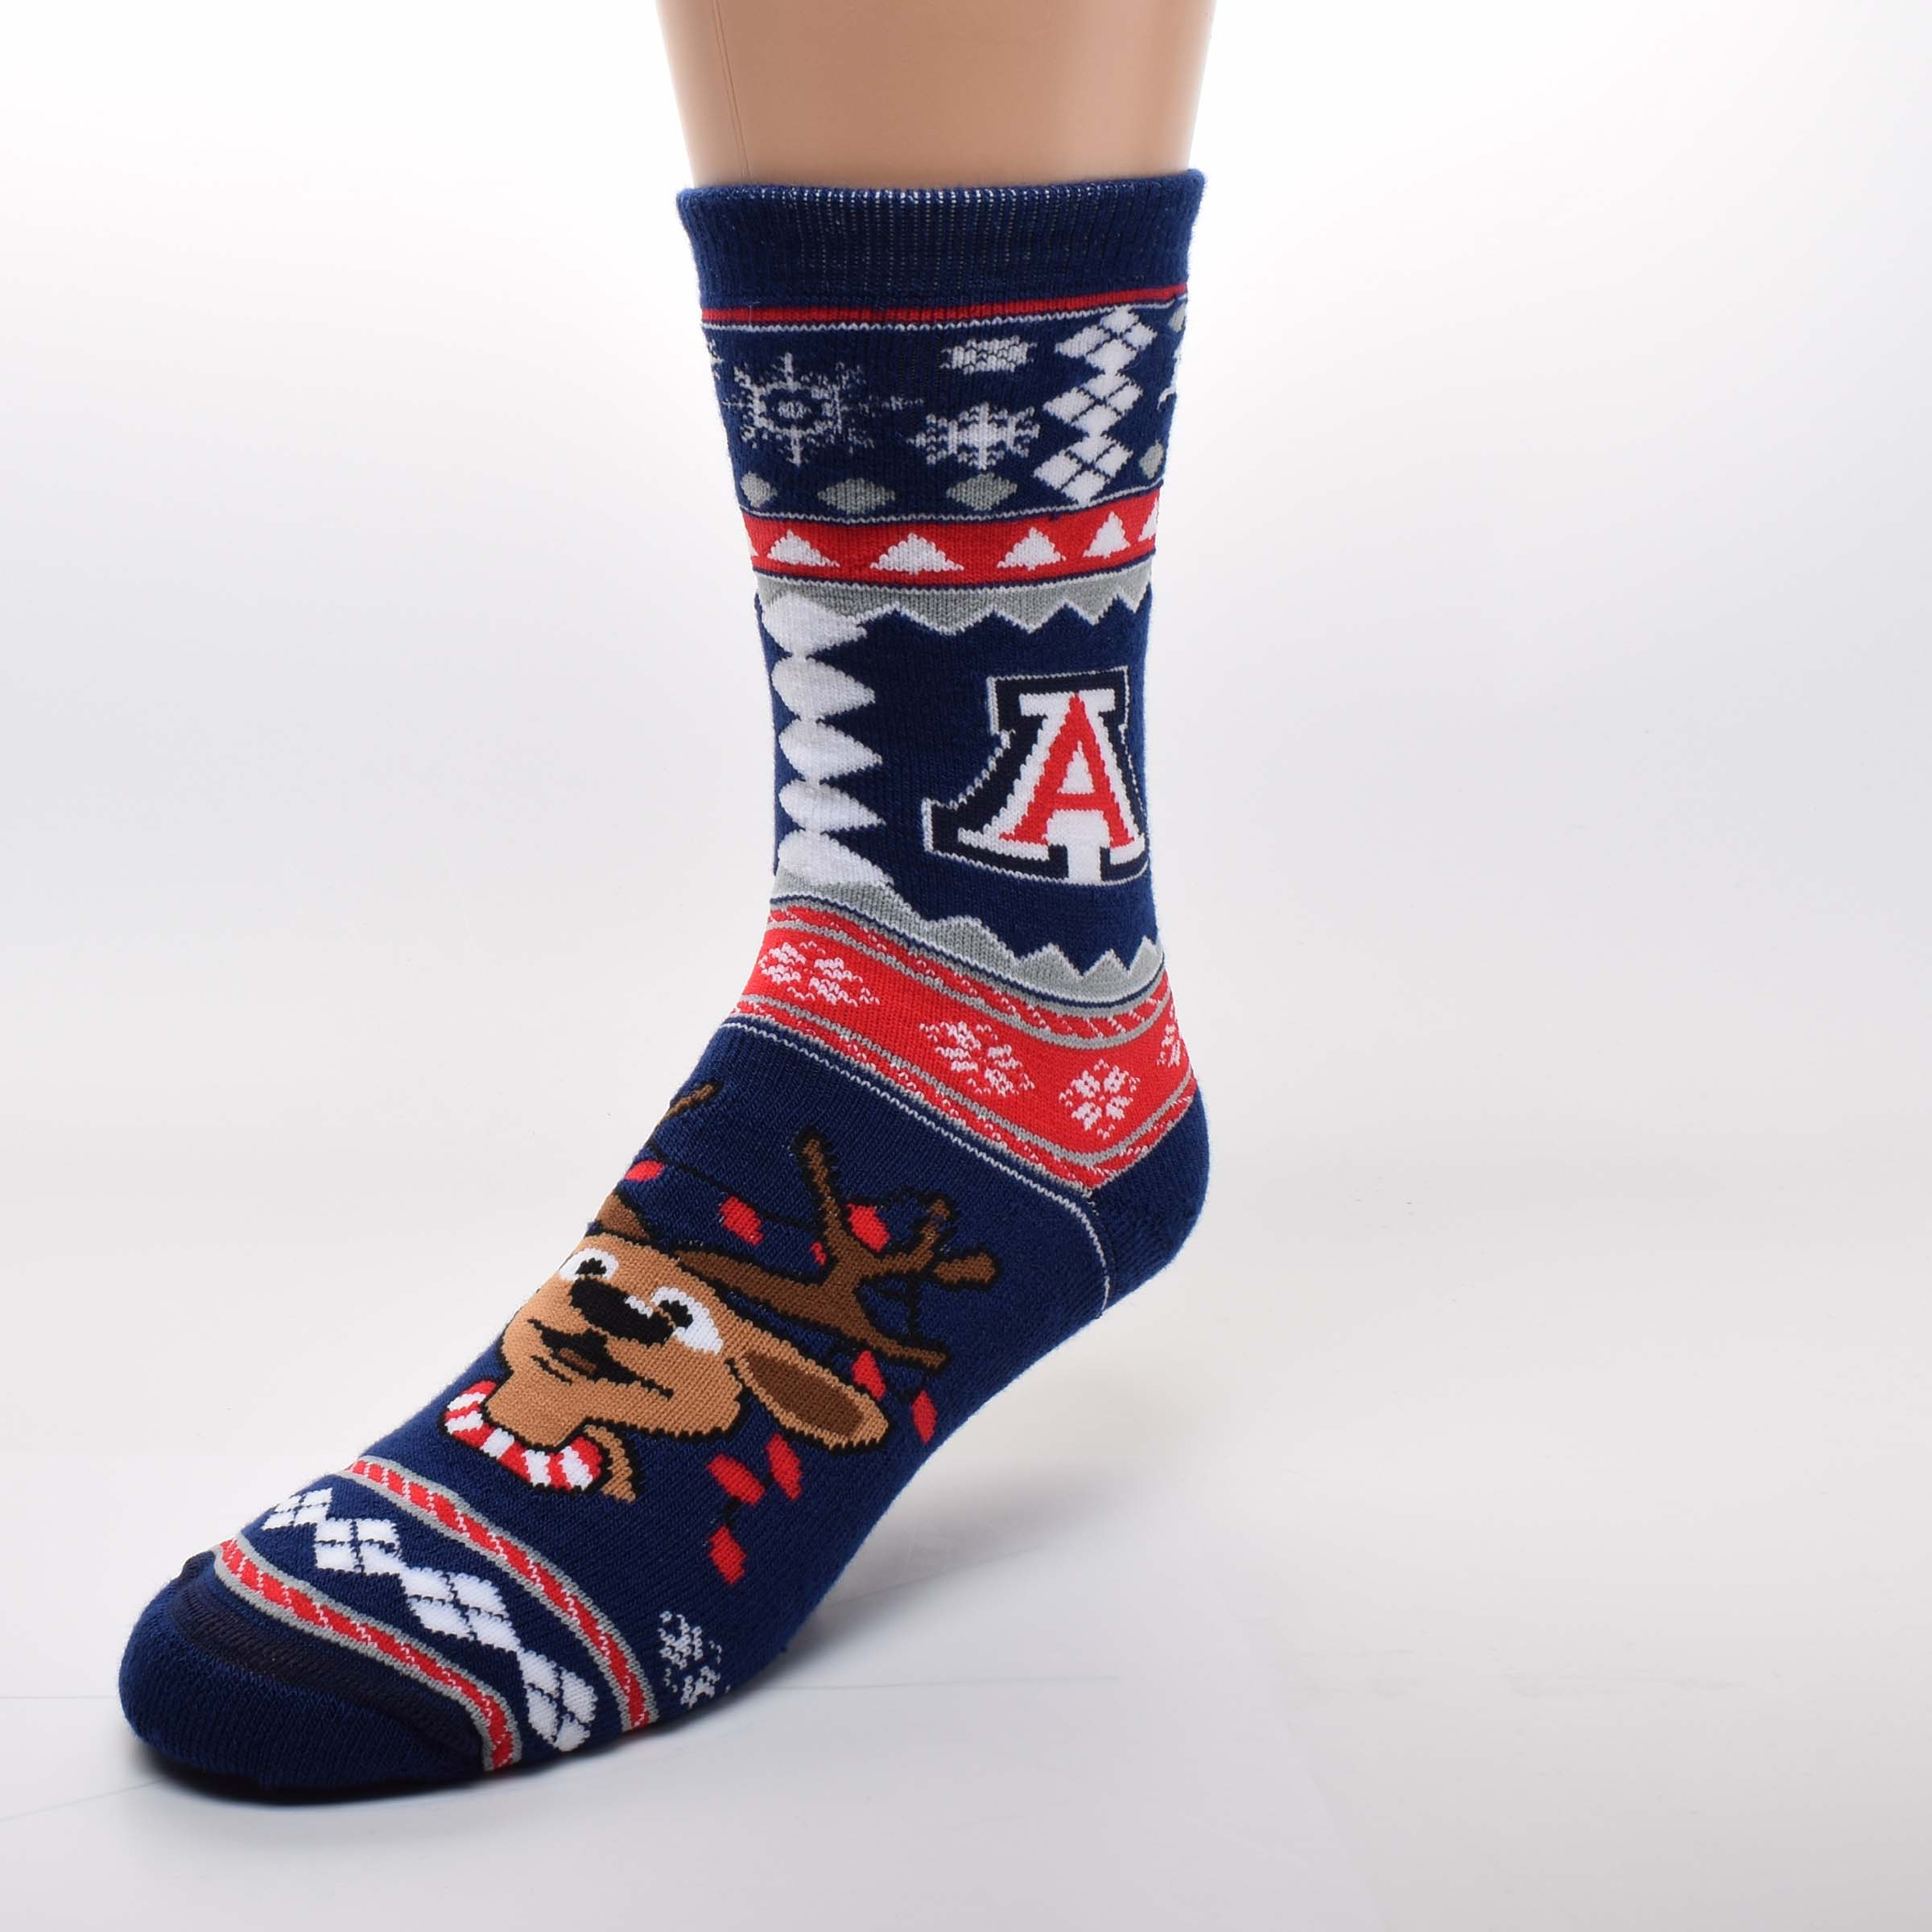 Image For Socks: Arizona Ugly Holiday Sweater Crew Socks by FBF